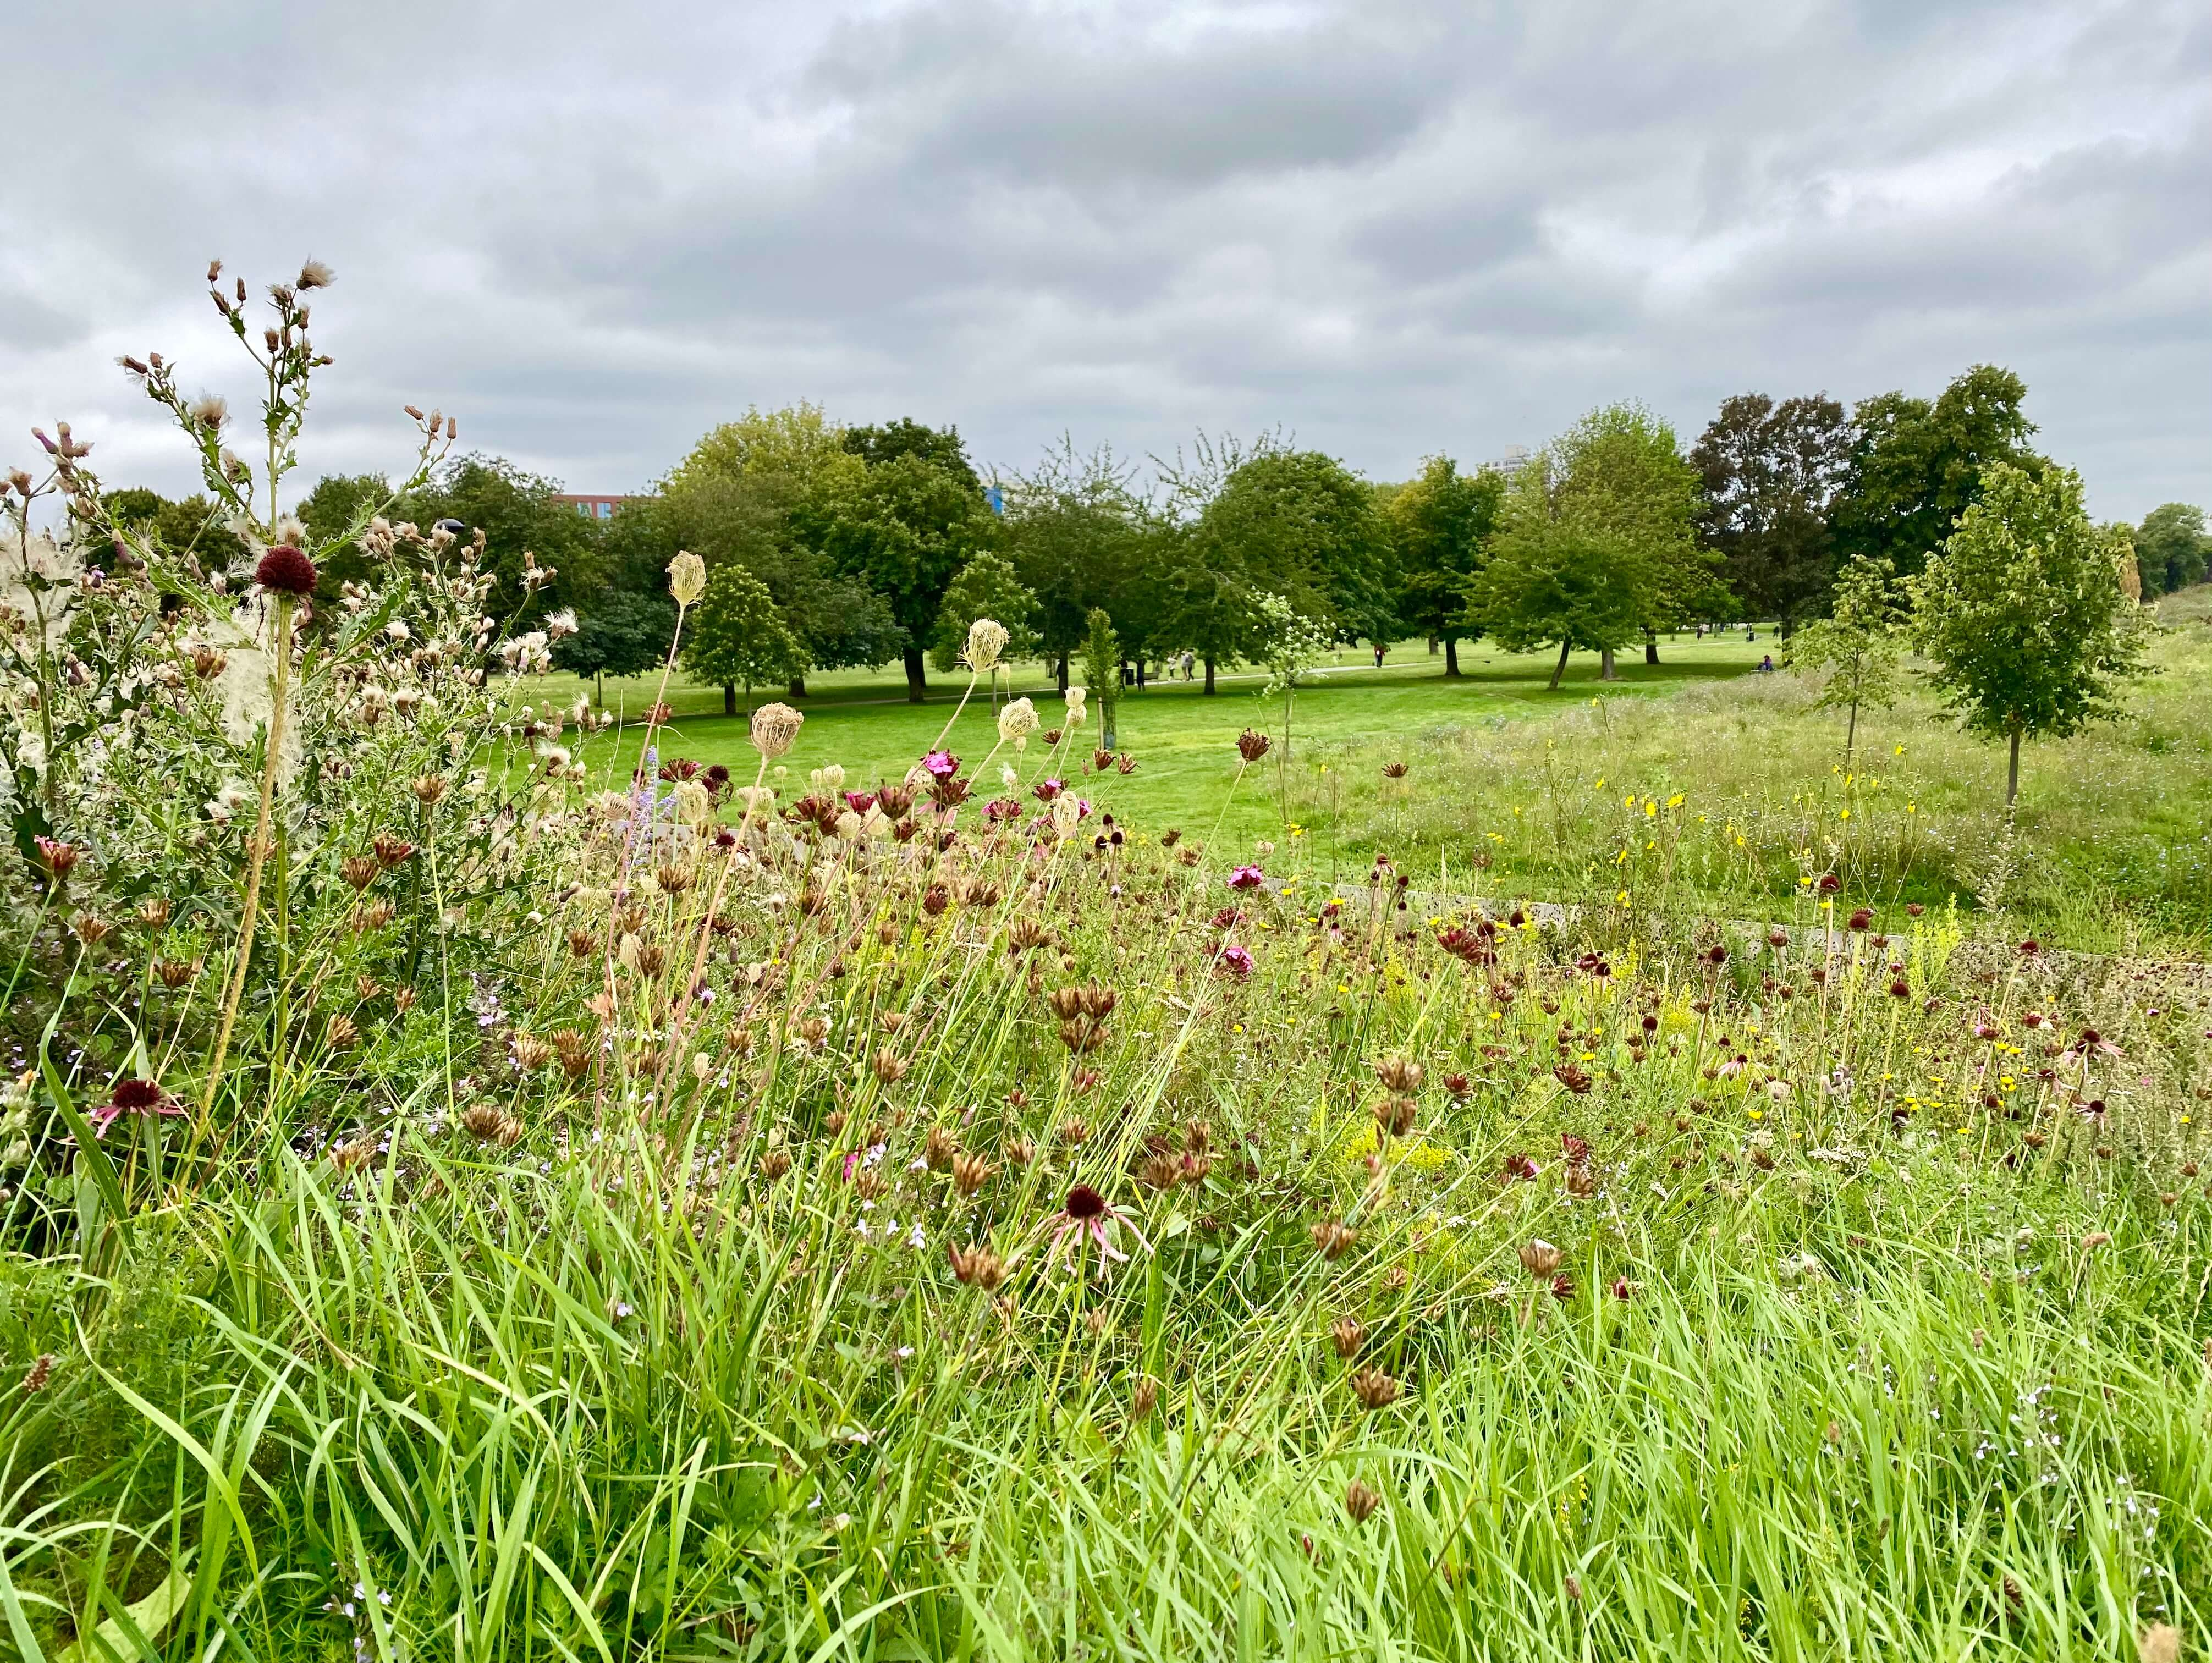 Exploring the largest park in Southwark, discovering its rich history and butterfly connections.